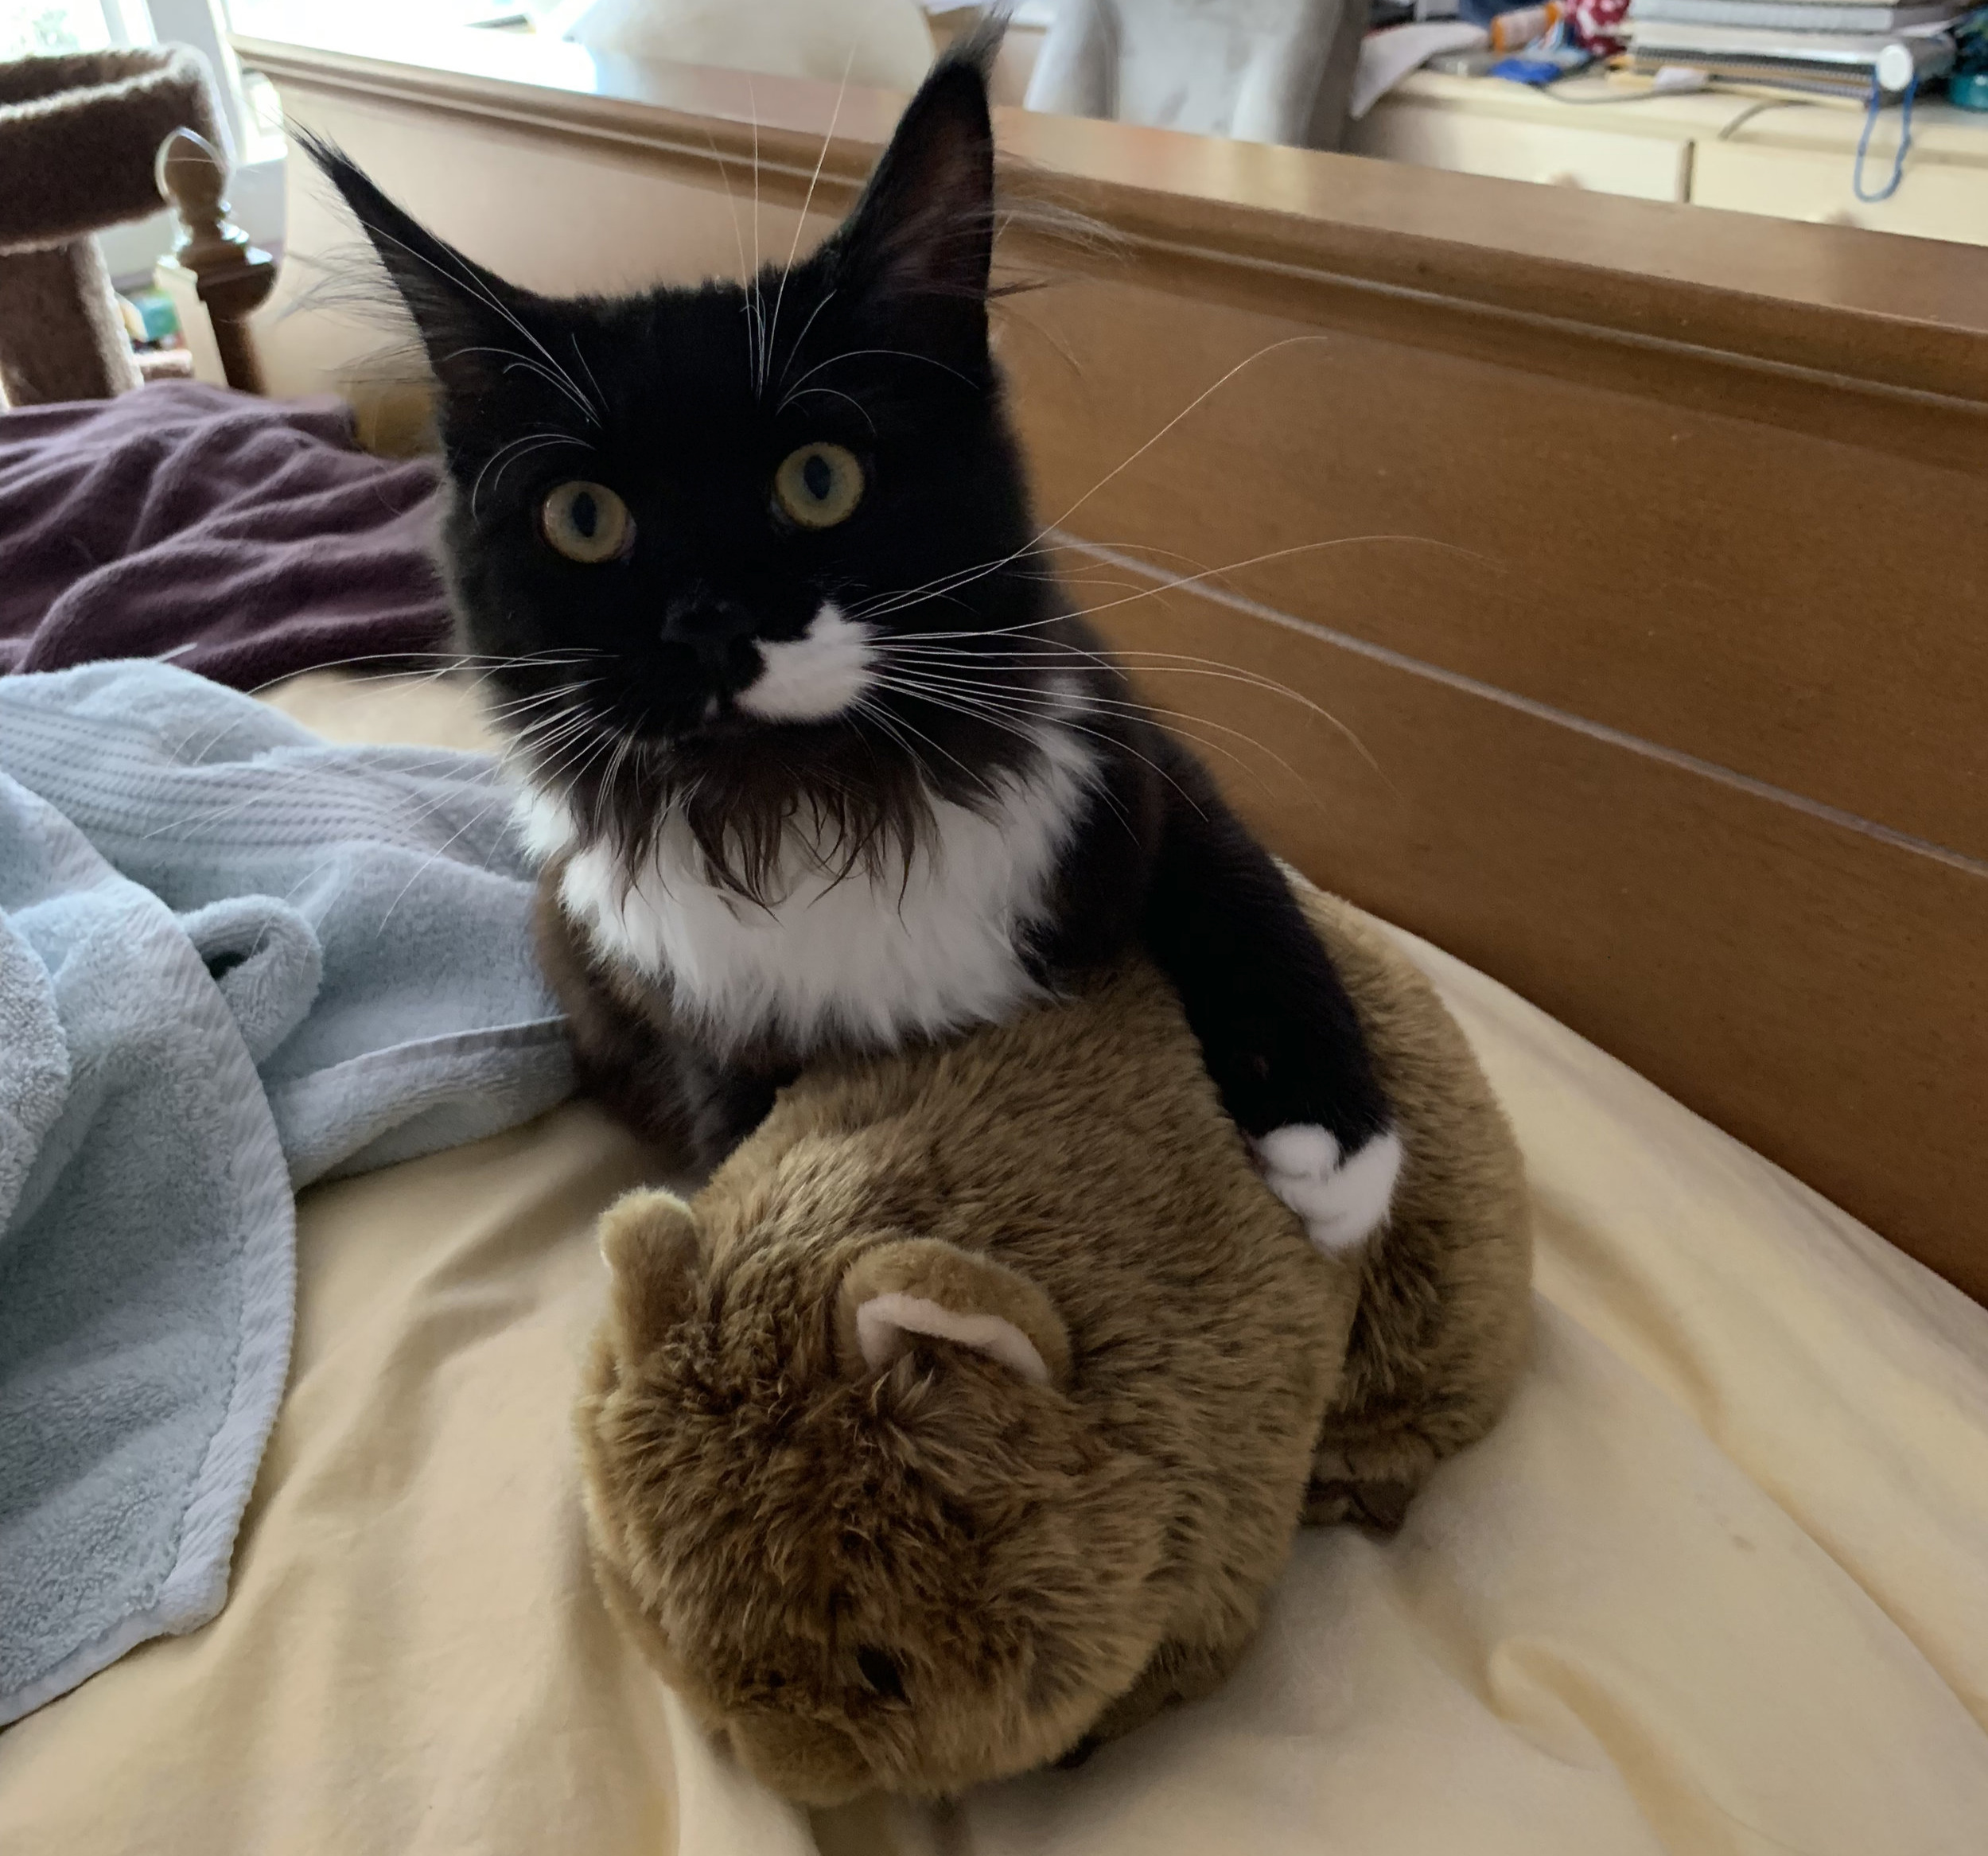 My cat, Zyva, deciding the wombat stuffed animal my friend Caitlin bought for me is now hers